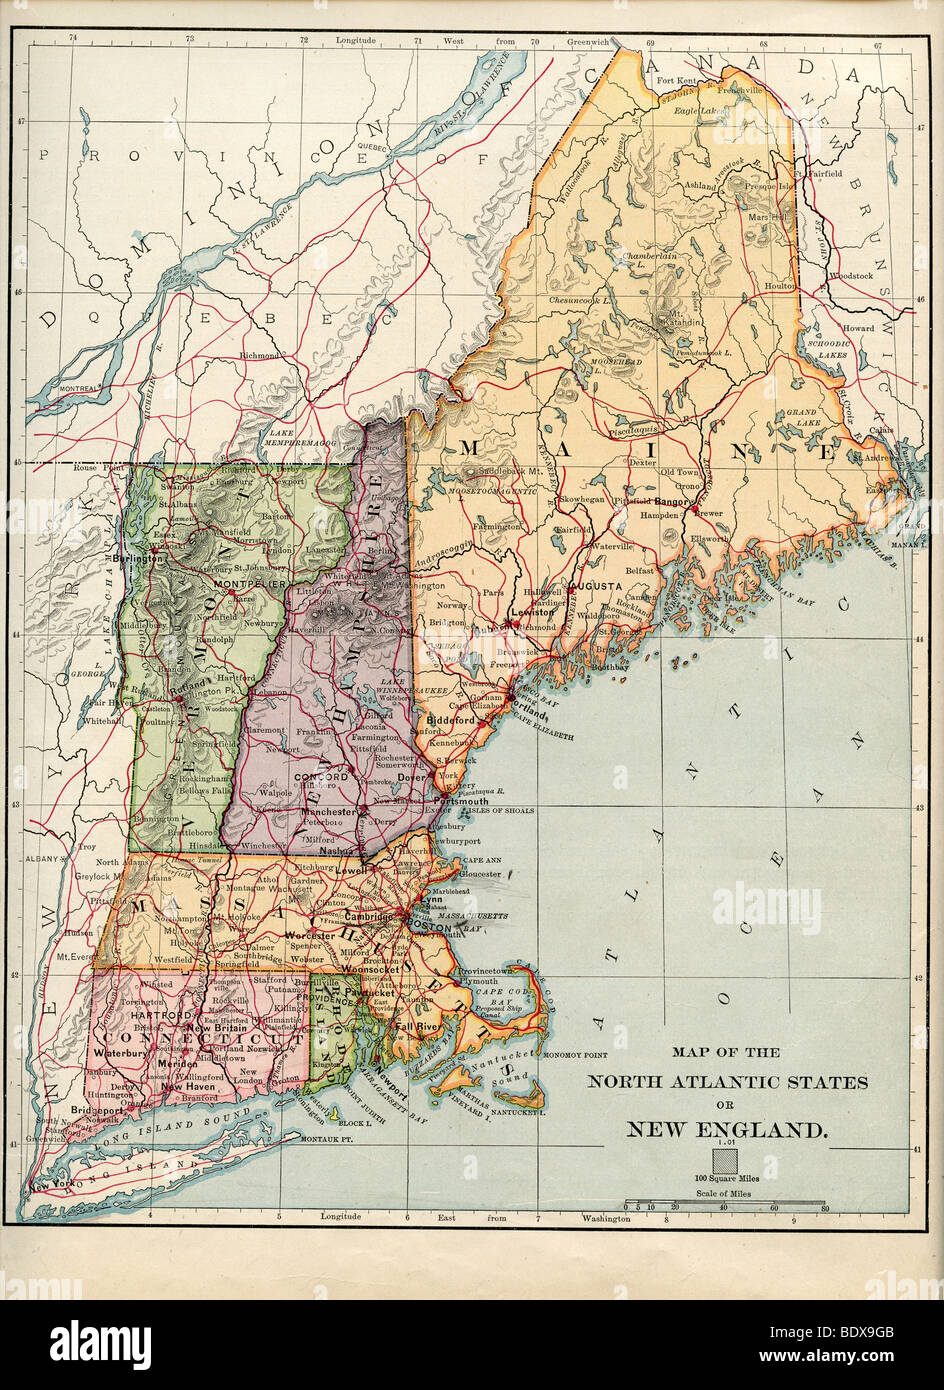 Original old map of new england from 1875 geography textbook stock original old map of new england from 1875 geography textbook publicscrutiny Choice Image